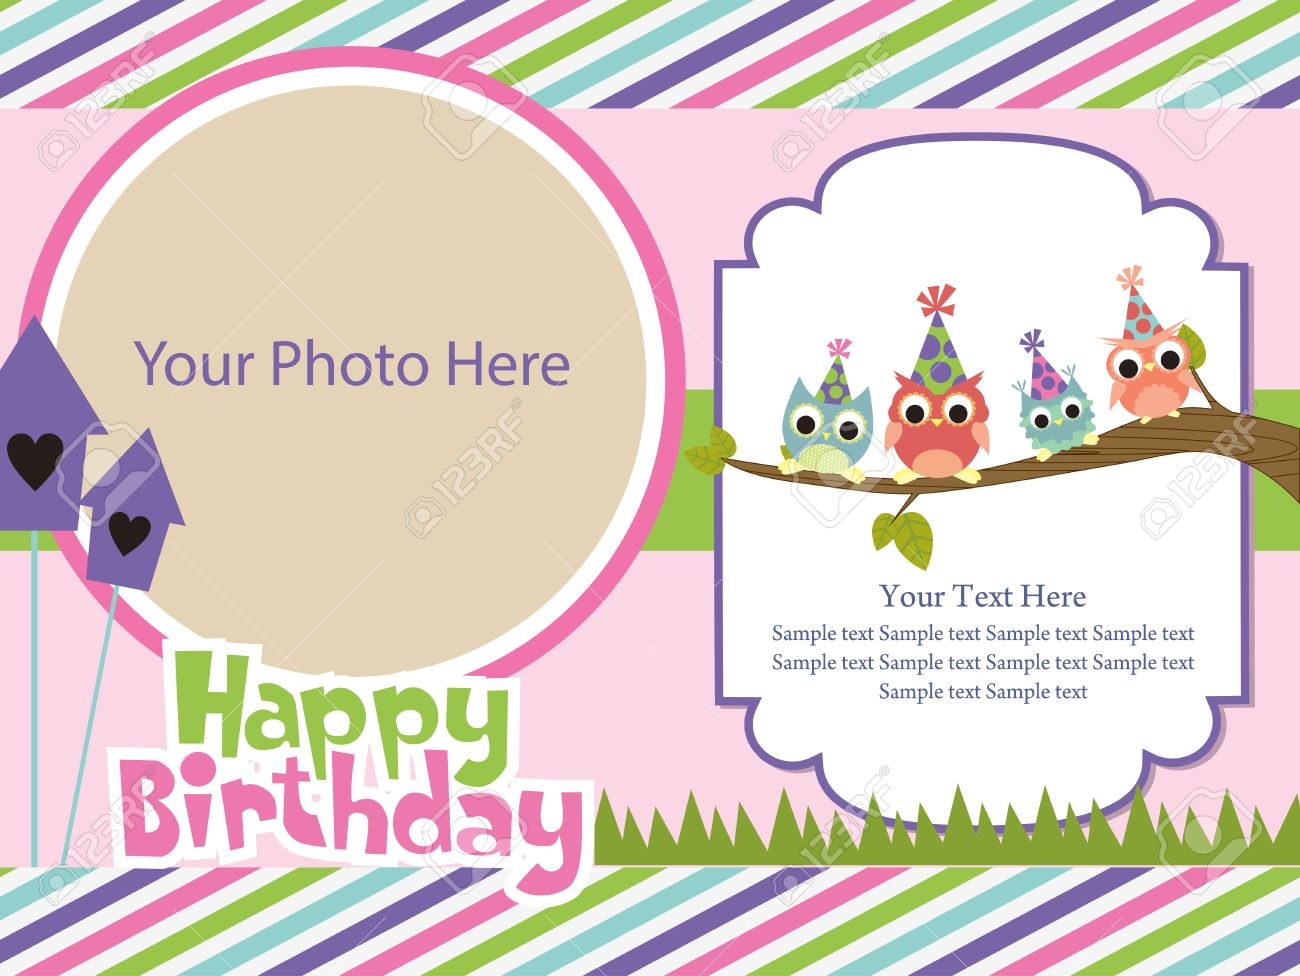 Happy birthday invitation card design vector illustration royalty happy birthday invitation card design vector illustration stock vector 26903663 stopboris Gallery